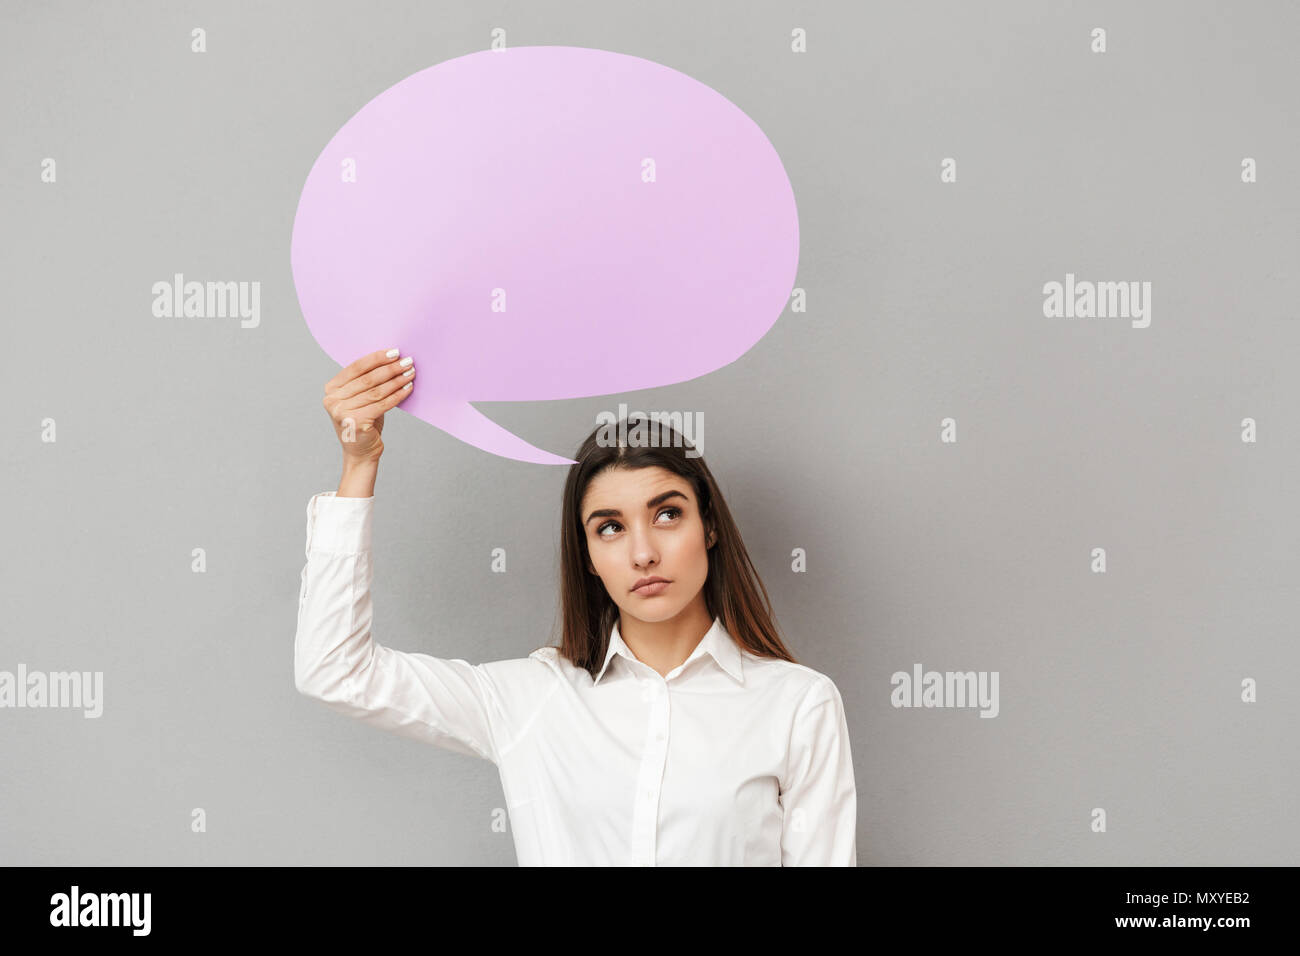 Photo of young woman in white shirt and black skirt with brooding look holding copyspace bubble for text isolated over gray background - Stock Image